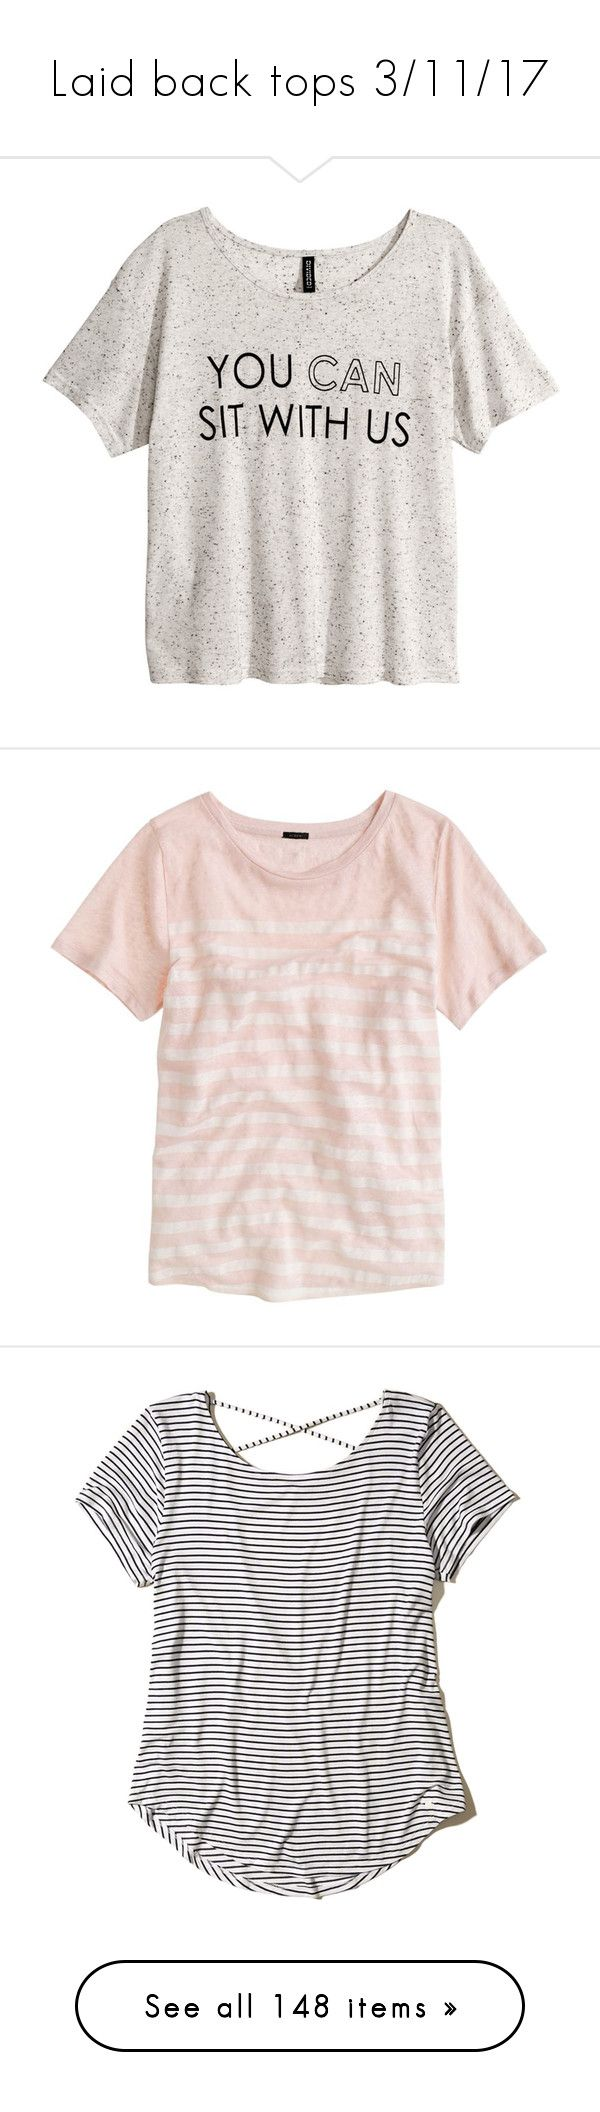 """""""Laid back tops 3/11/17"""" by sparkles-and-salamanders ❤ liked on Polyvore featuring tops, t-shirts, shirts, blusas, grey, short sleeve tops, tee-shirt, short-sleeve button-down shirts, jersey shirt and short sleeve t shirt"""